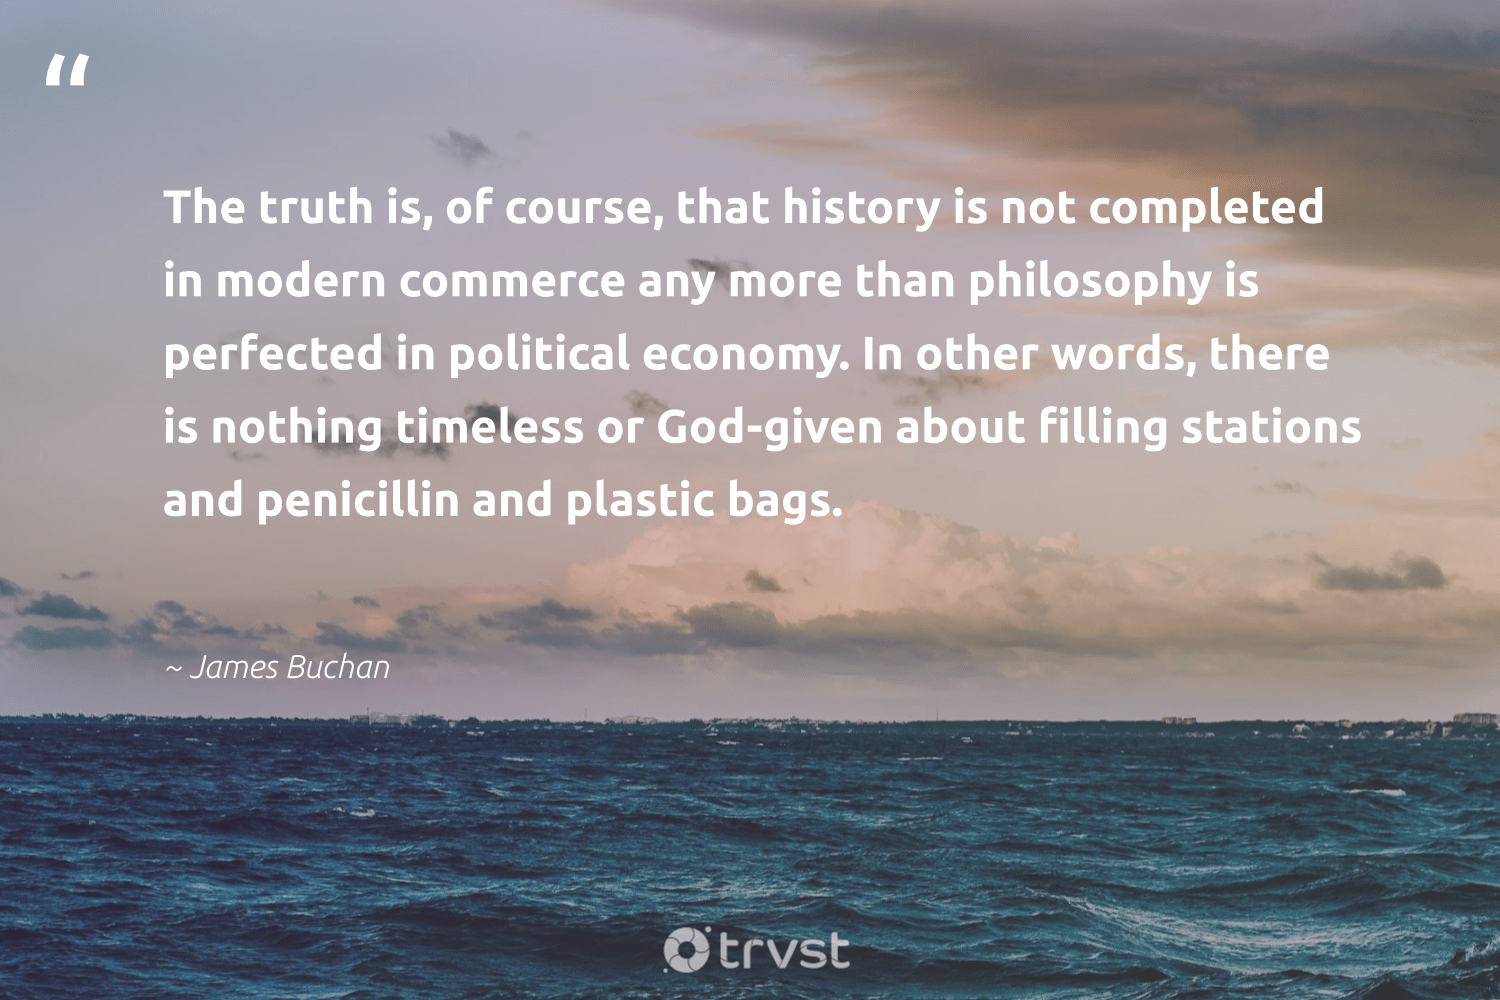 """""""The truth is, of course, that history is not completed in modern commerce any more than philosophy is perfected in political economy. In other words, there is nothing timeless or God-given about filling stations and penicillin and plastic bags.""""  - James Buchan #trvst #quotes #plasticwaste #plastic #truth #microplastic #sustainability #environment #changetheworld #plasticsucks #thinkgreen #planetearthfirst"""